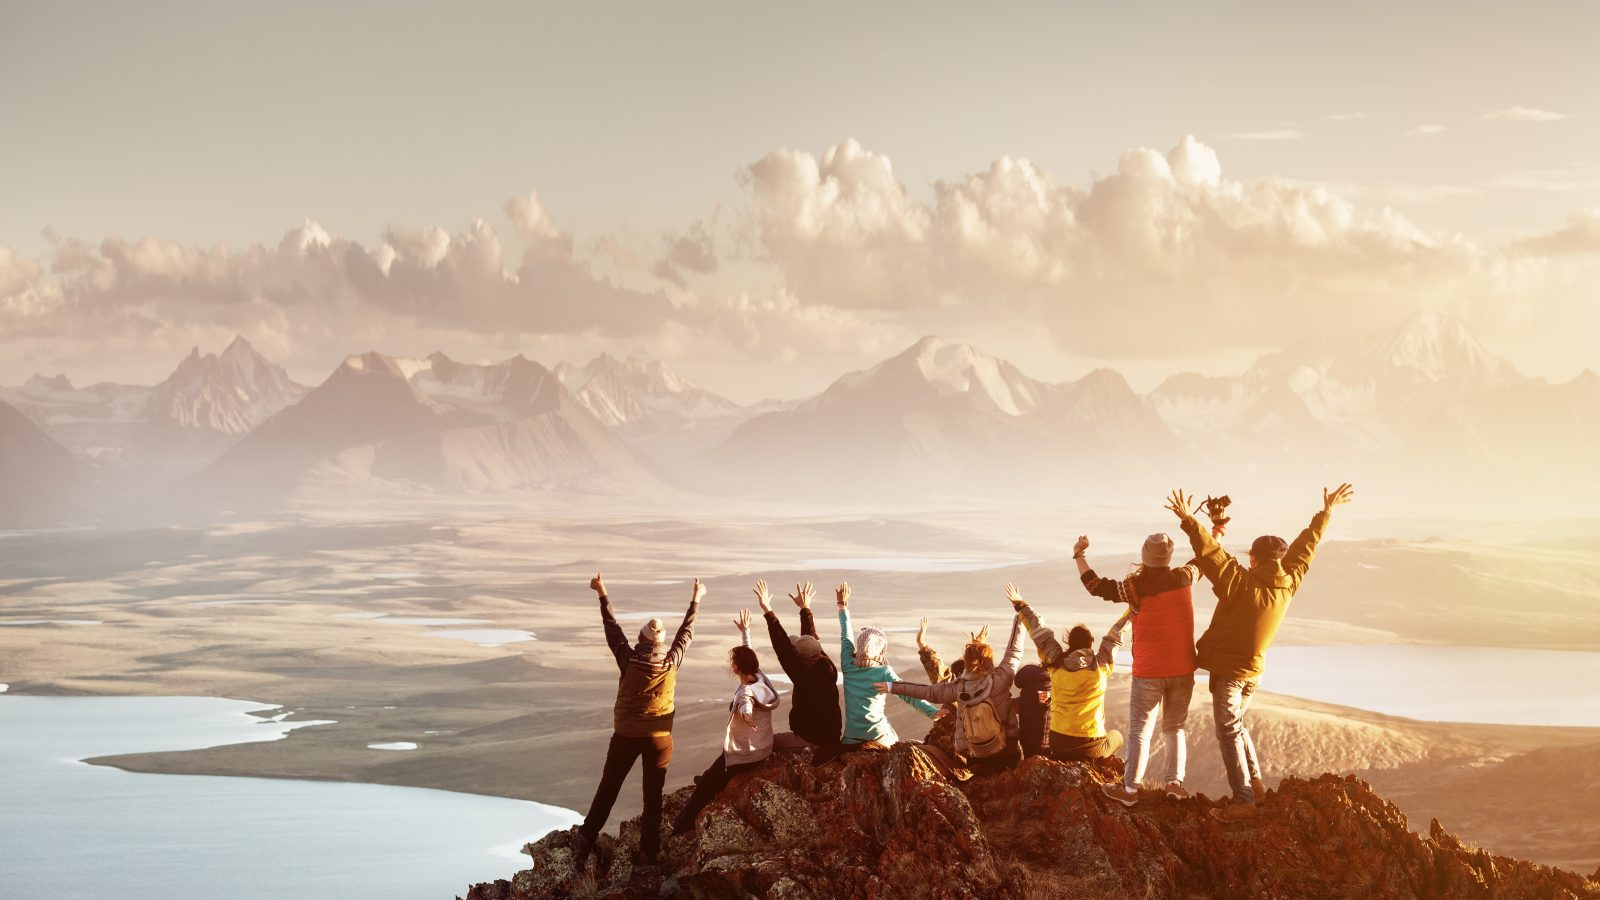 Big group of people success mountain top - group travel resources